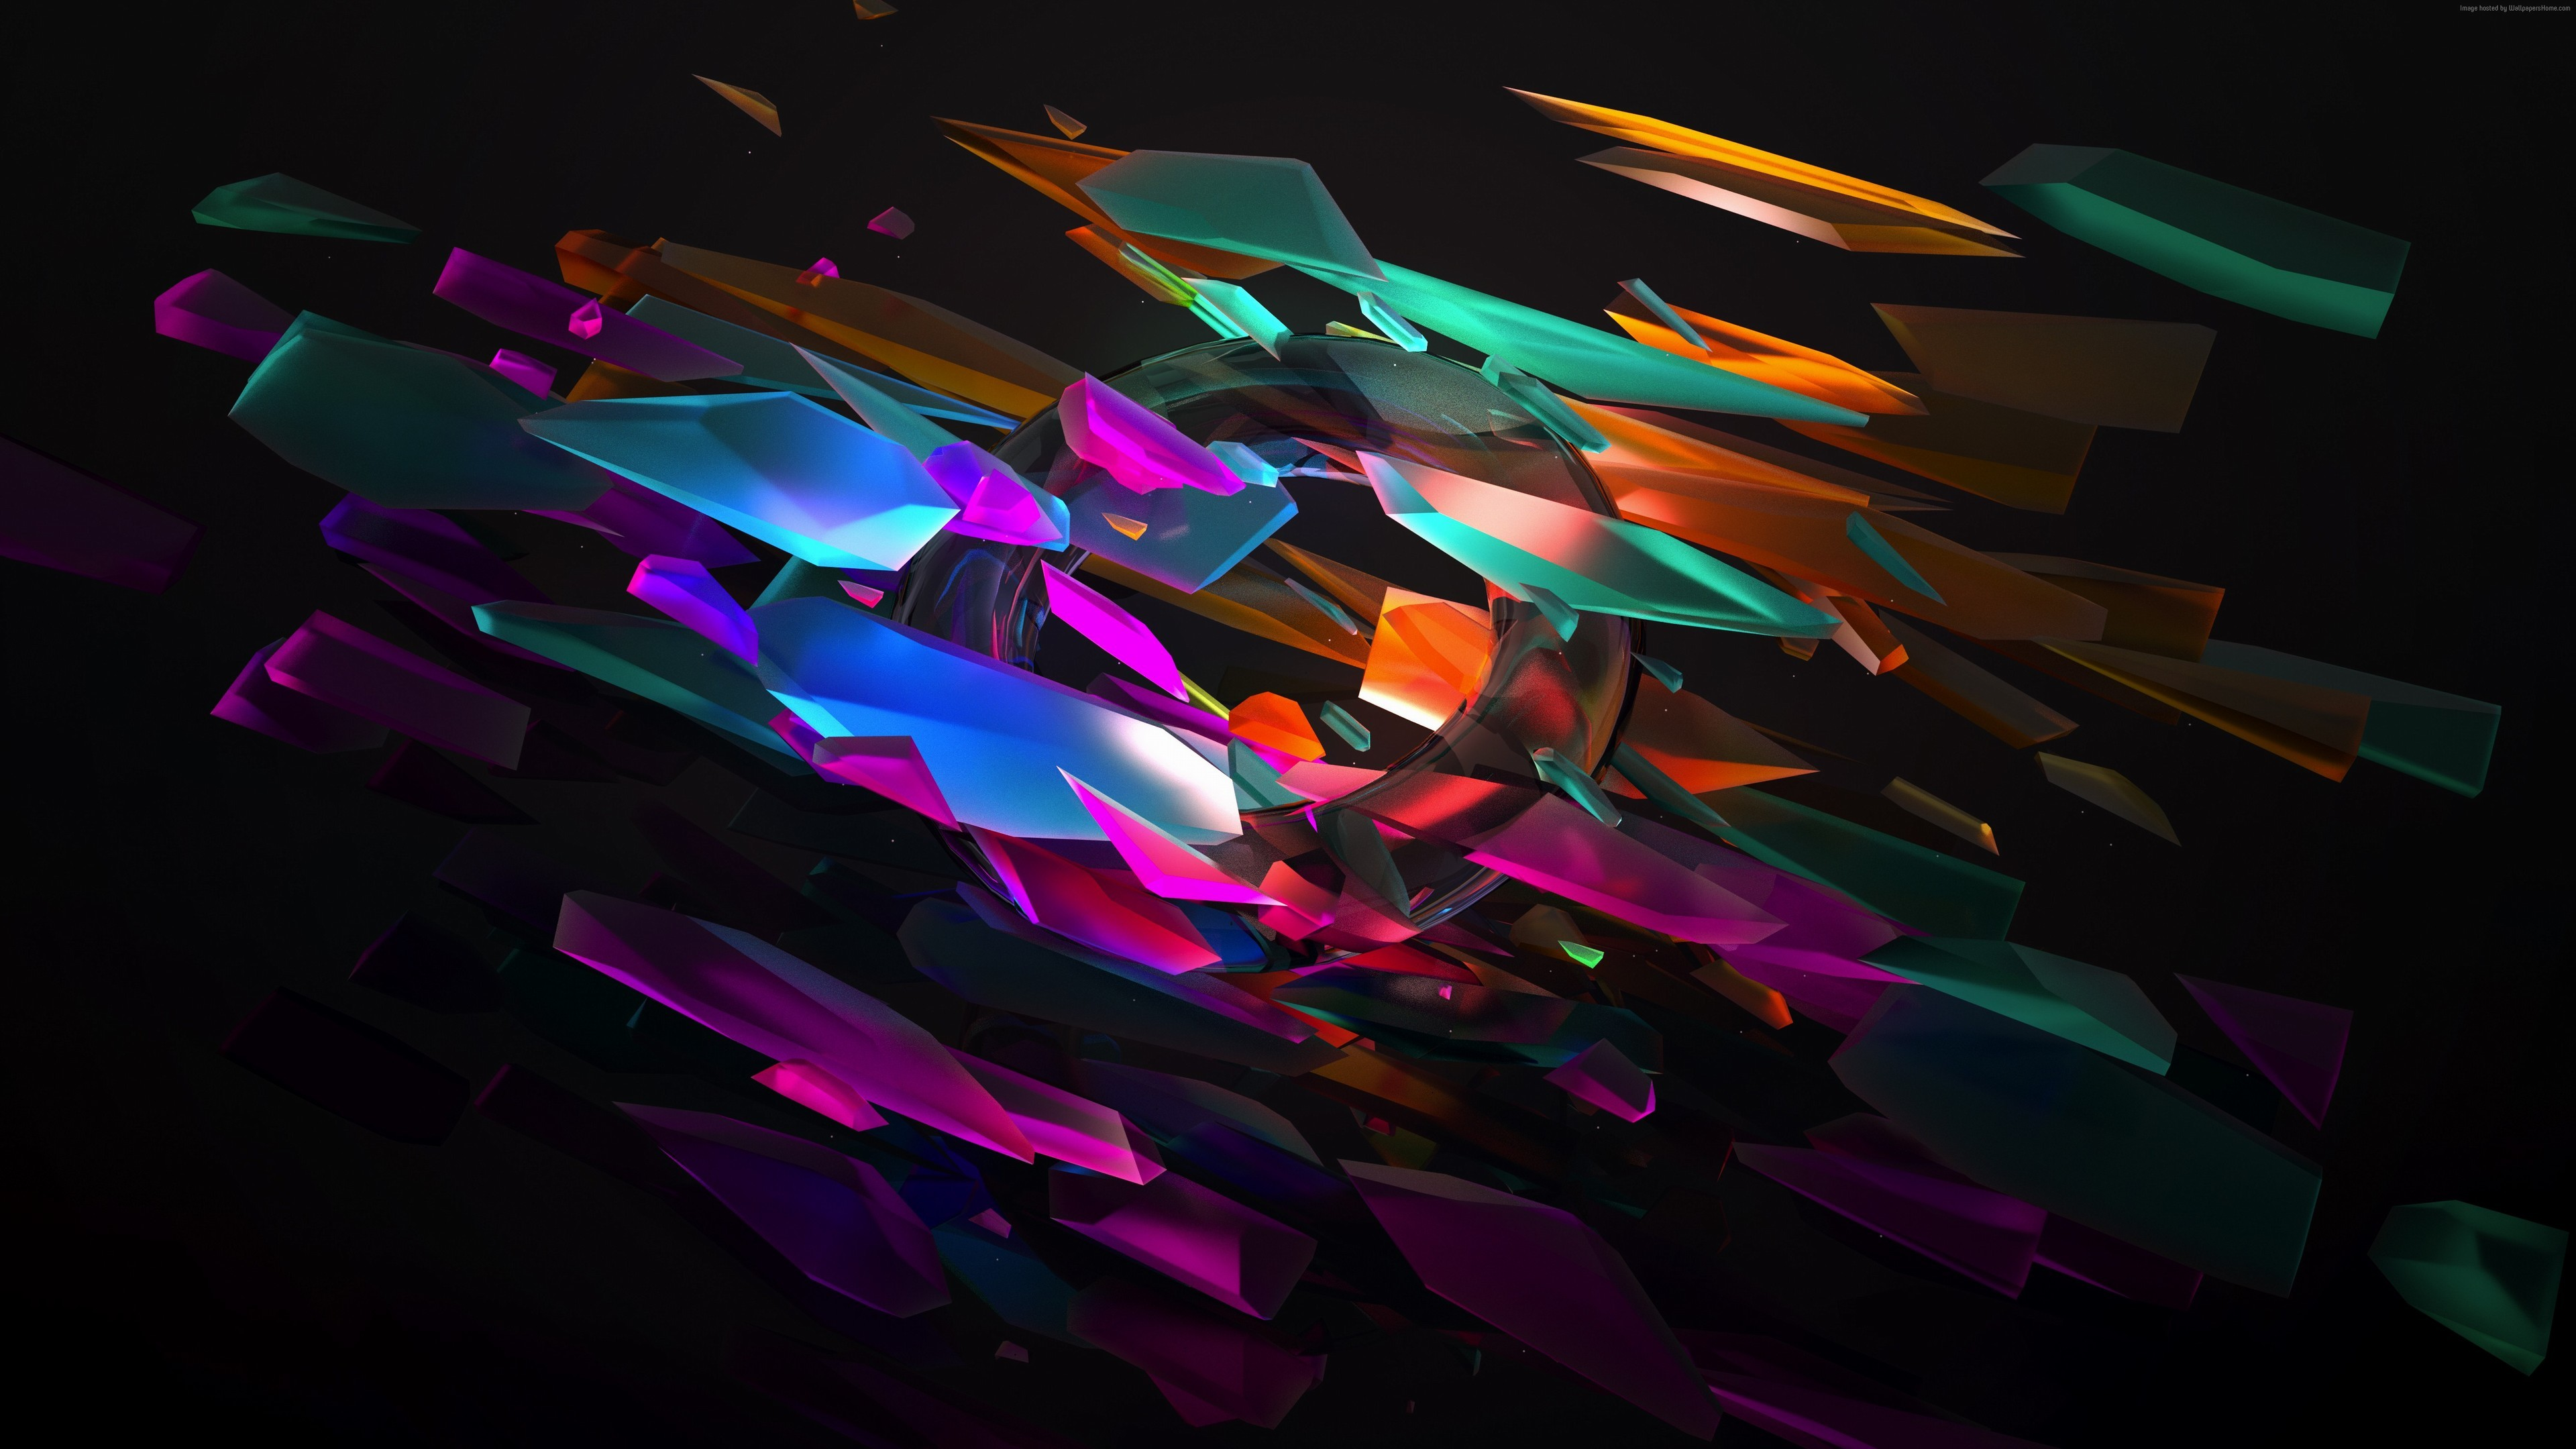 Res: 3840x2160, 3D Glass Pieces Wallpaper